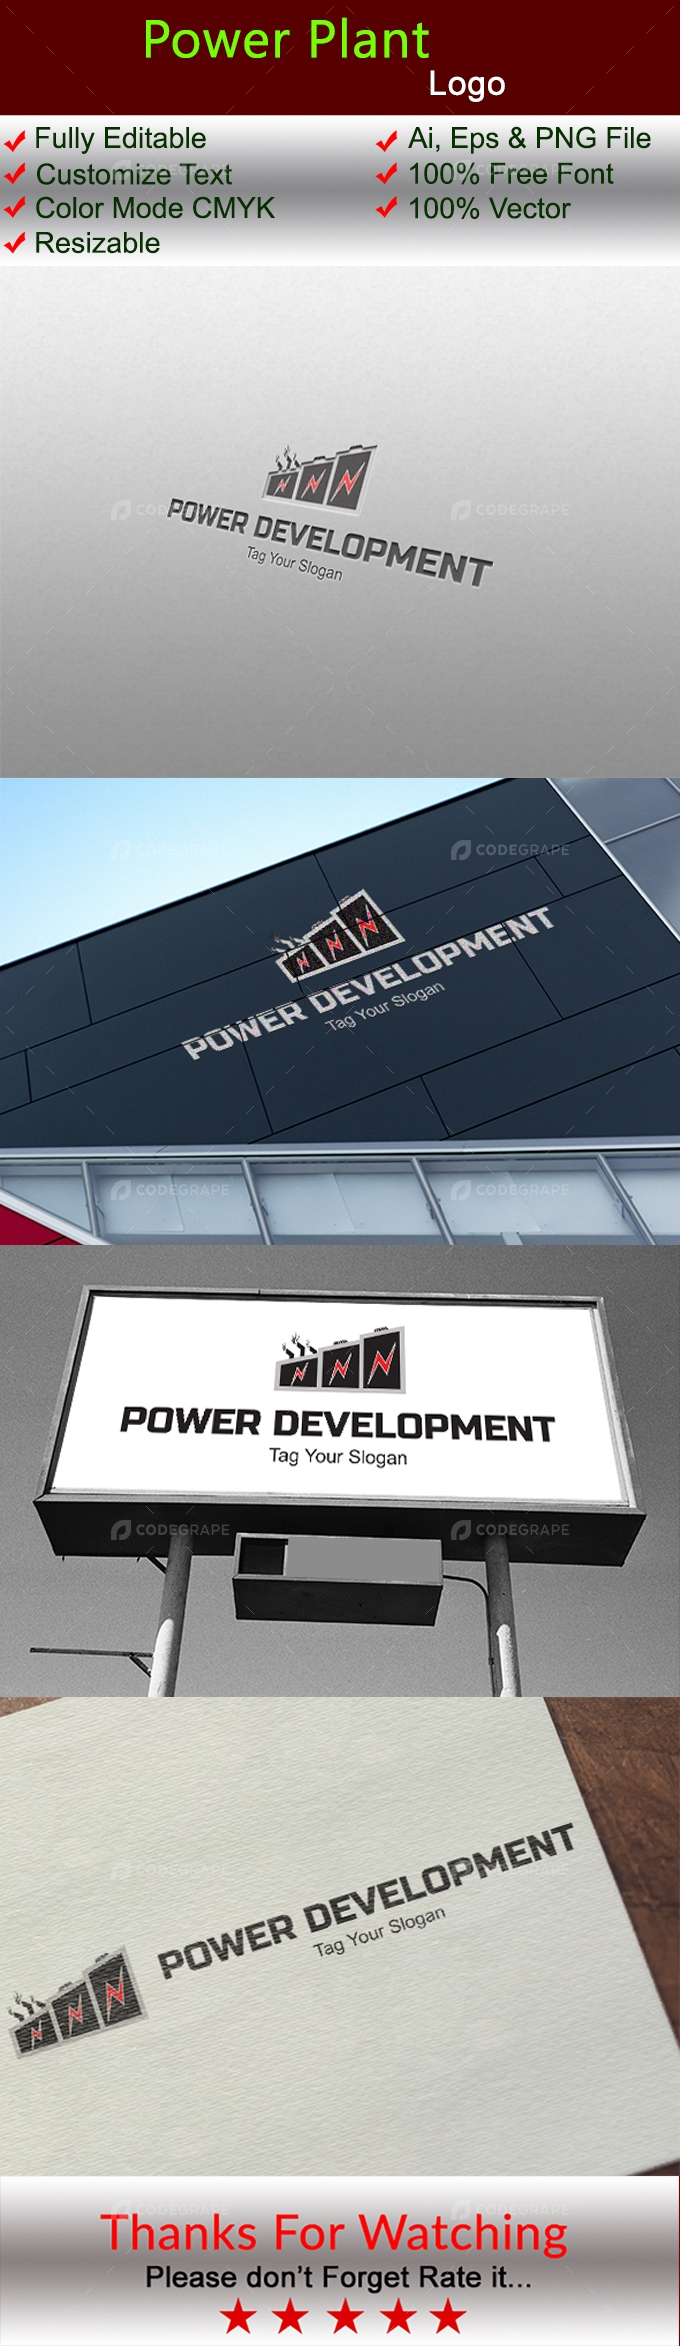 Power Plant Logo Template